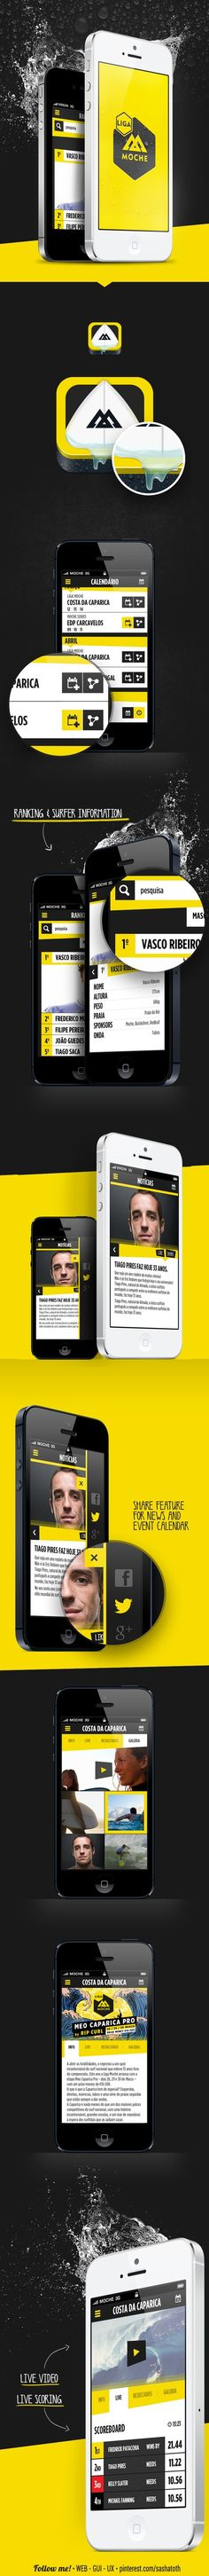 """Liga Moche iOS App concept *** """"Moche is TMN's (the leading mobile operator in Portugal) brand for youth targeted plans and it just released its new mobile app called Liga Moche,"""